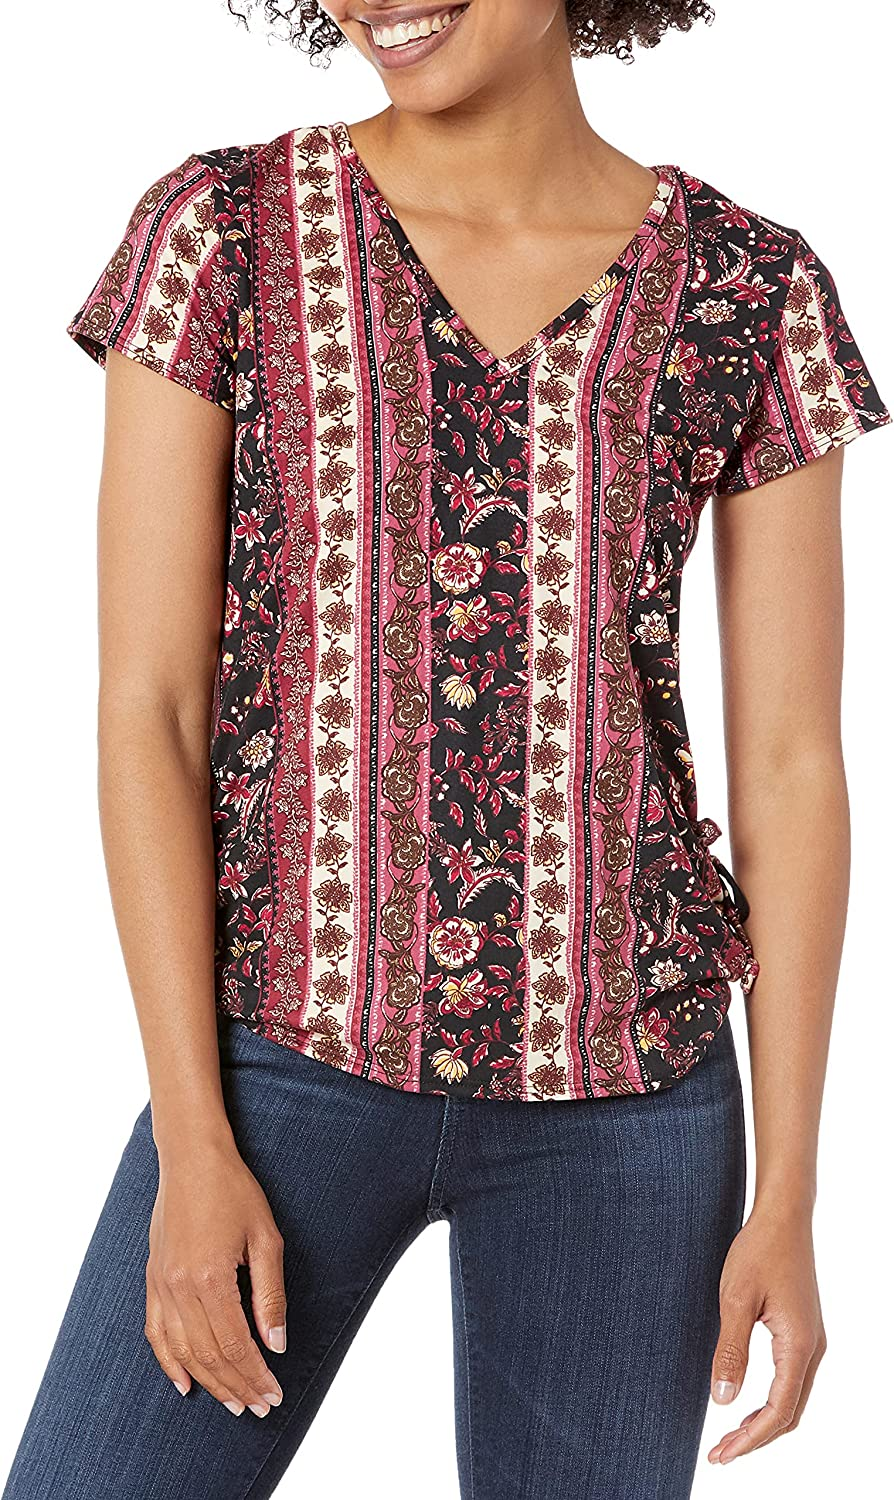 Star Vixen Women's Short Sleeve V Neck Top with Ruched Side Detail